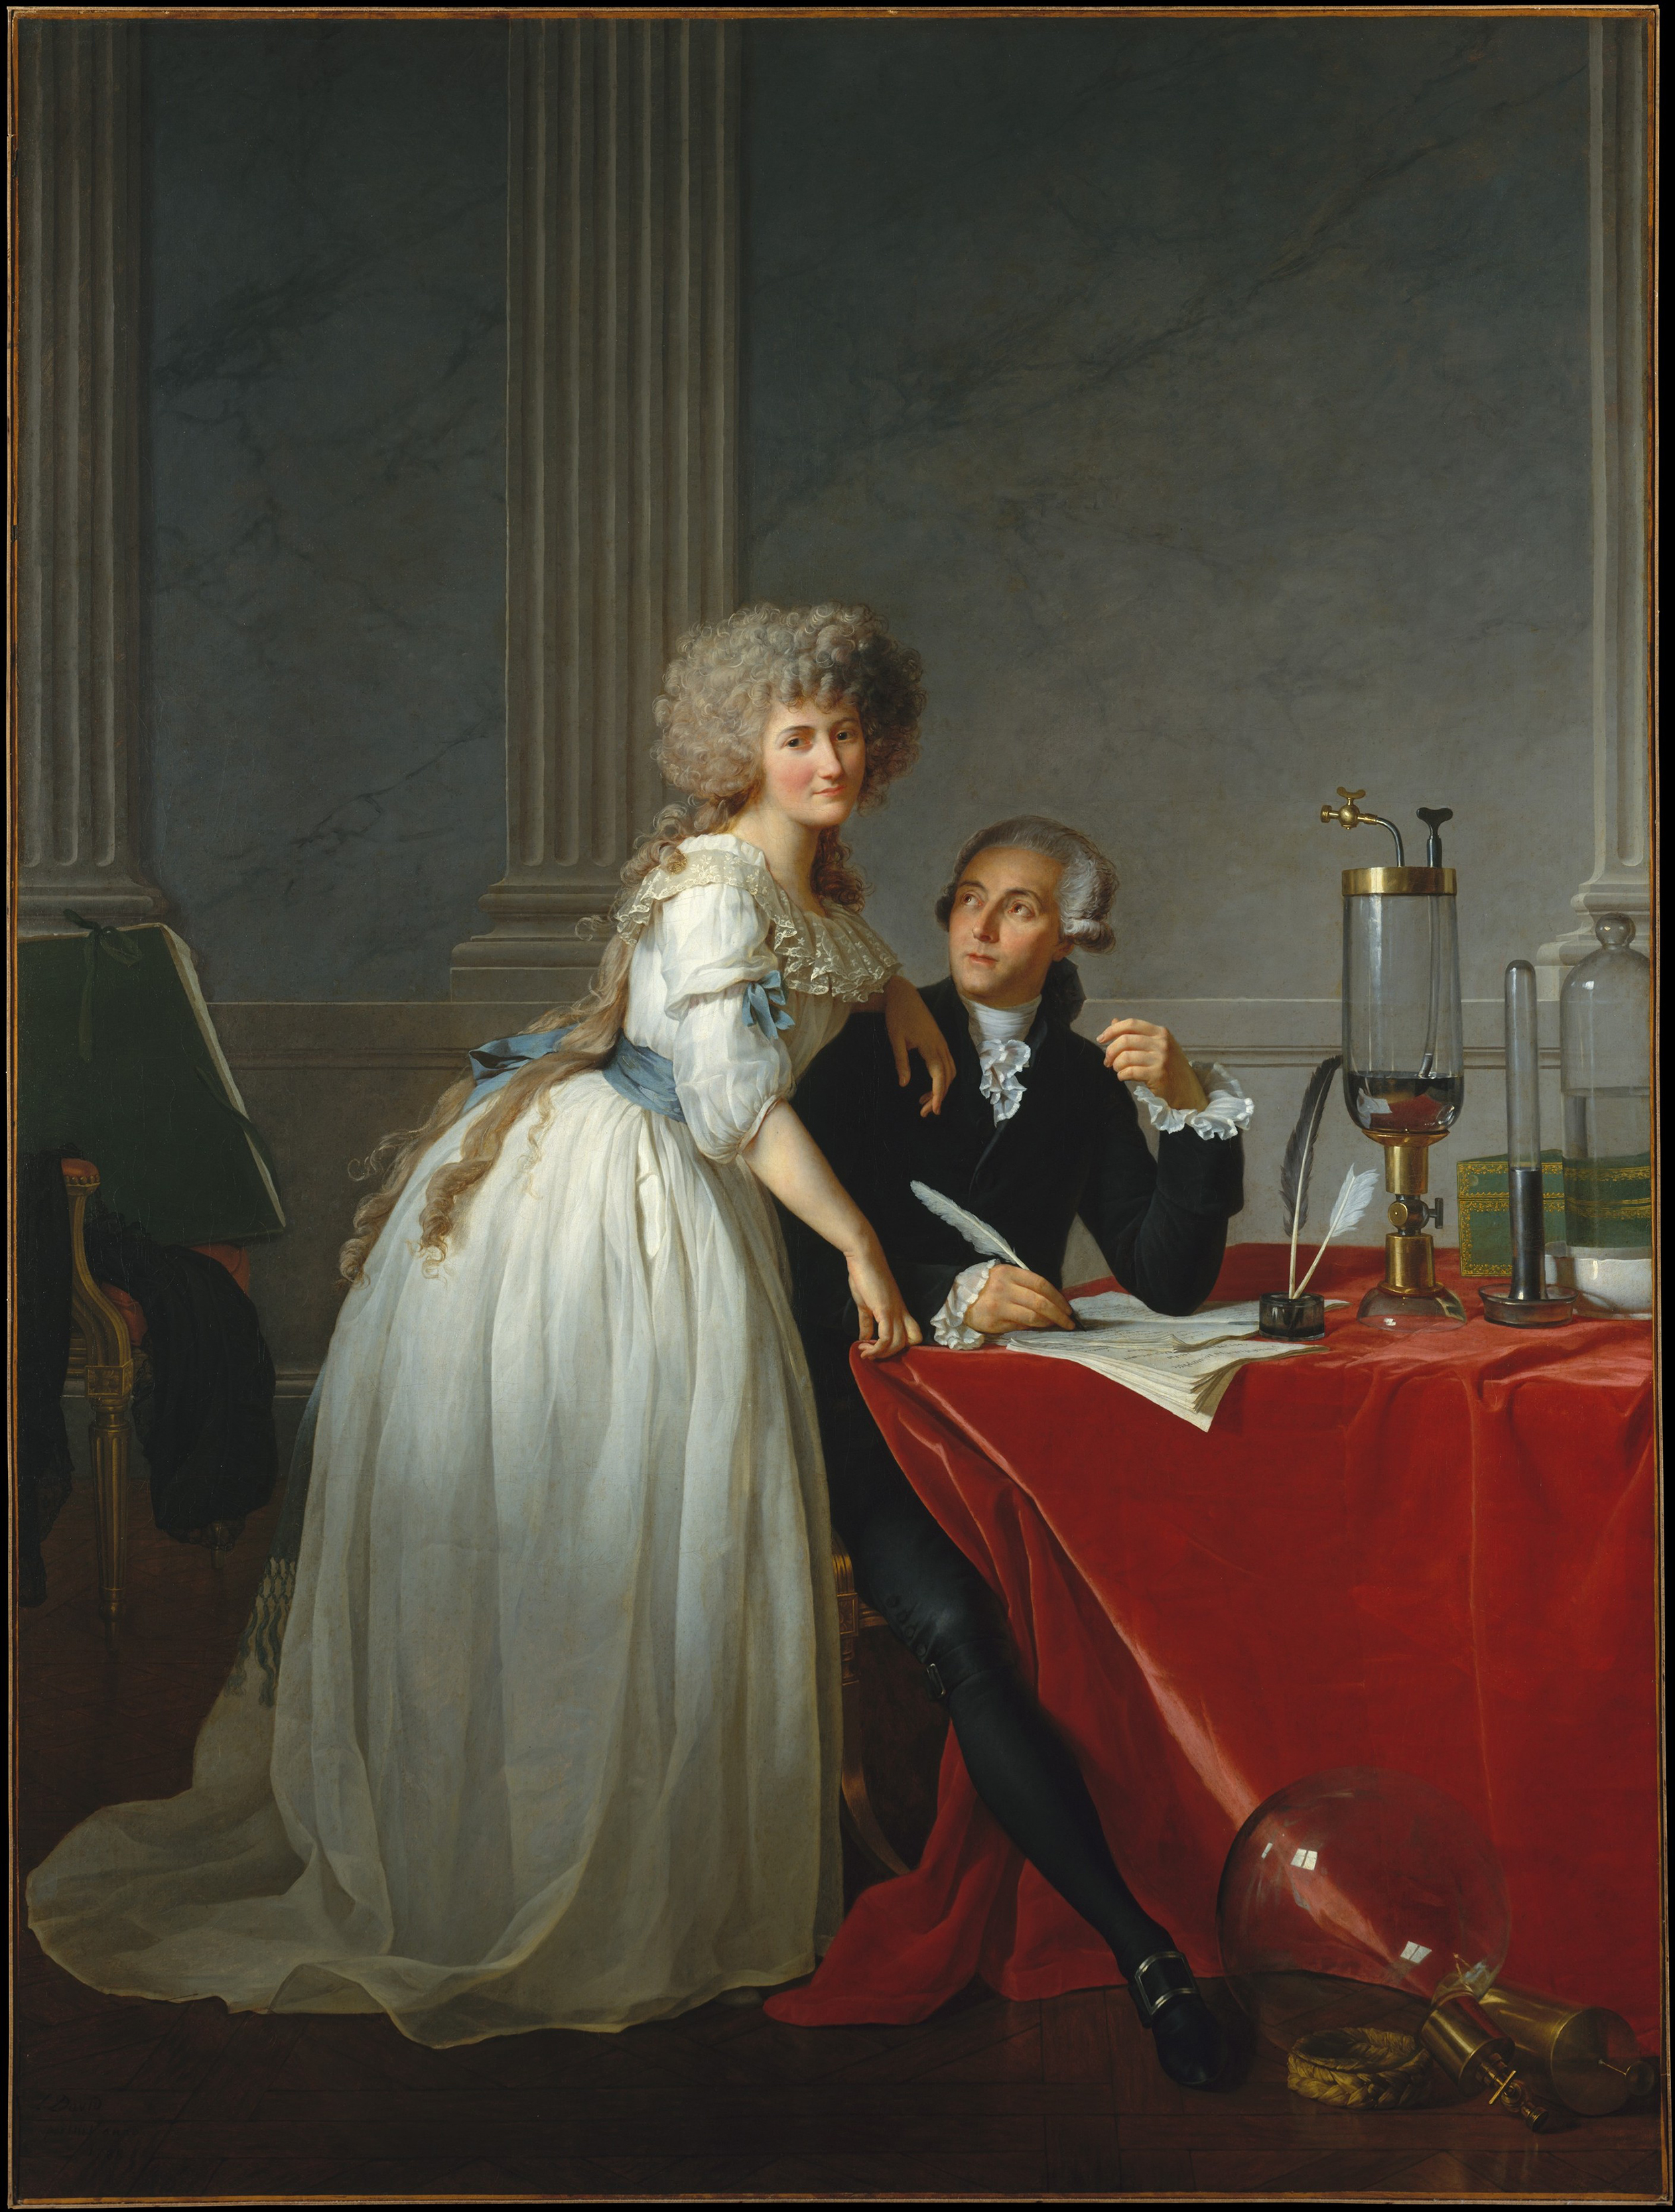 Antoine-Laurent Lavoisier and His Wife, Marie-Anne-Pierrette Paulze., 1788 — Jacques-Louis David, Metropolitan Museum of Art